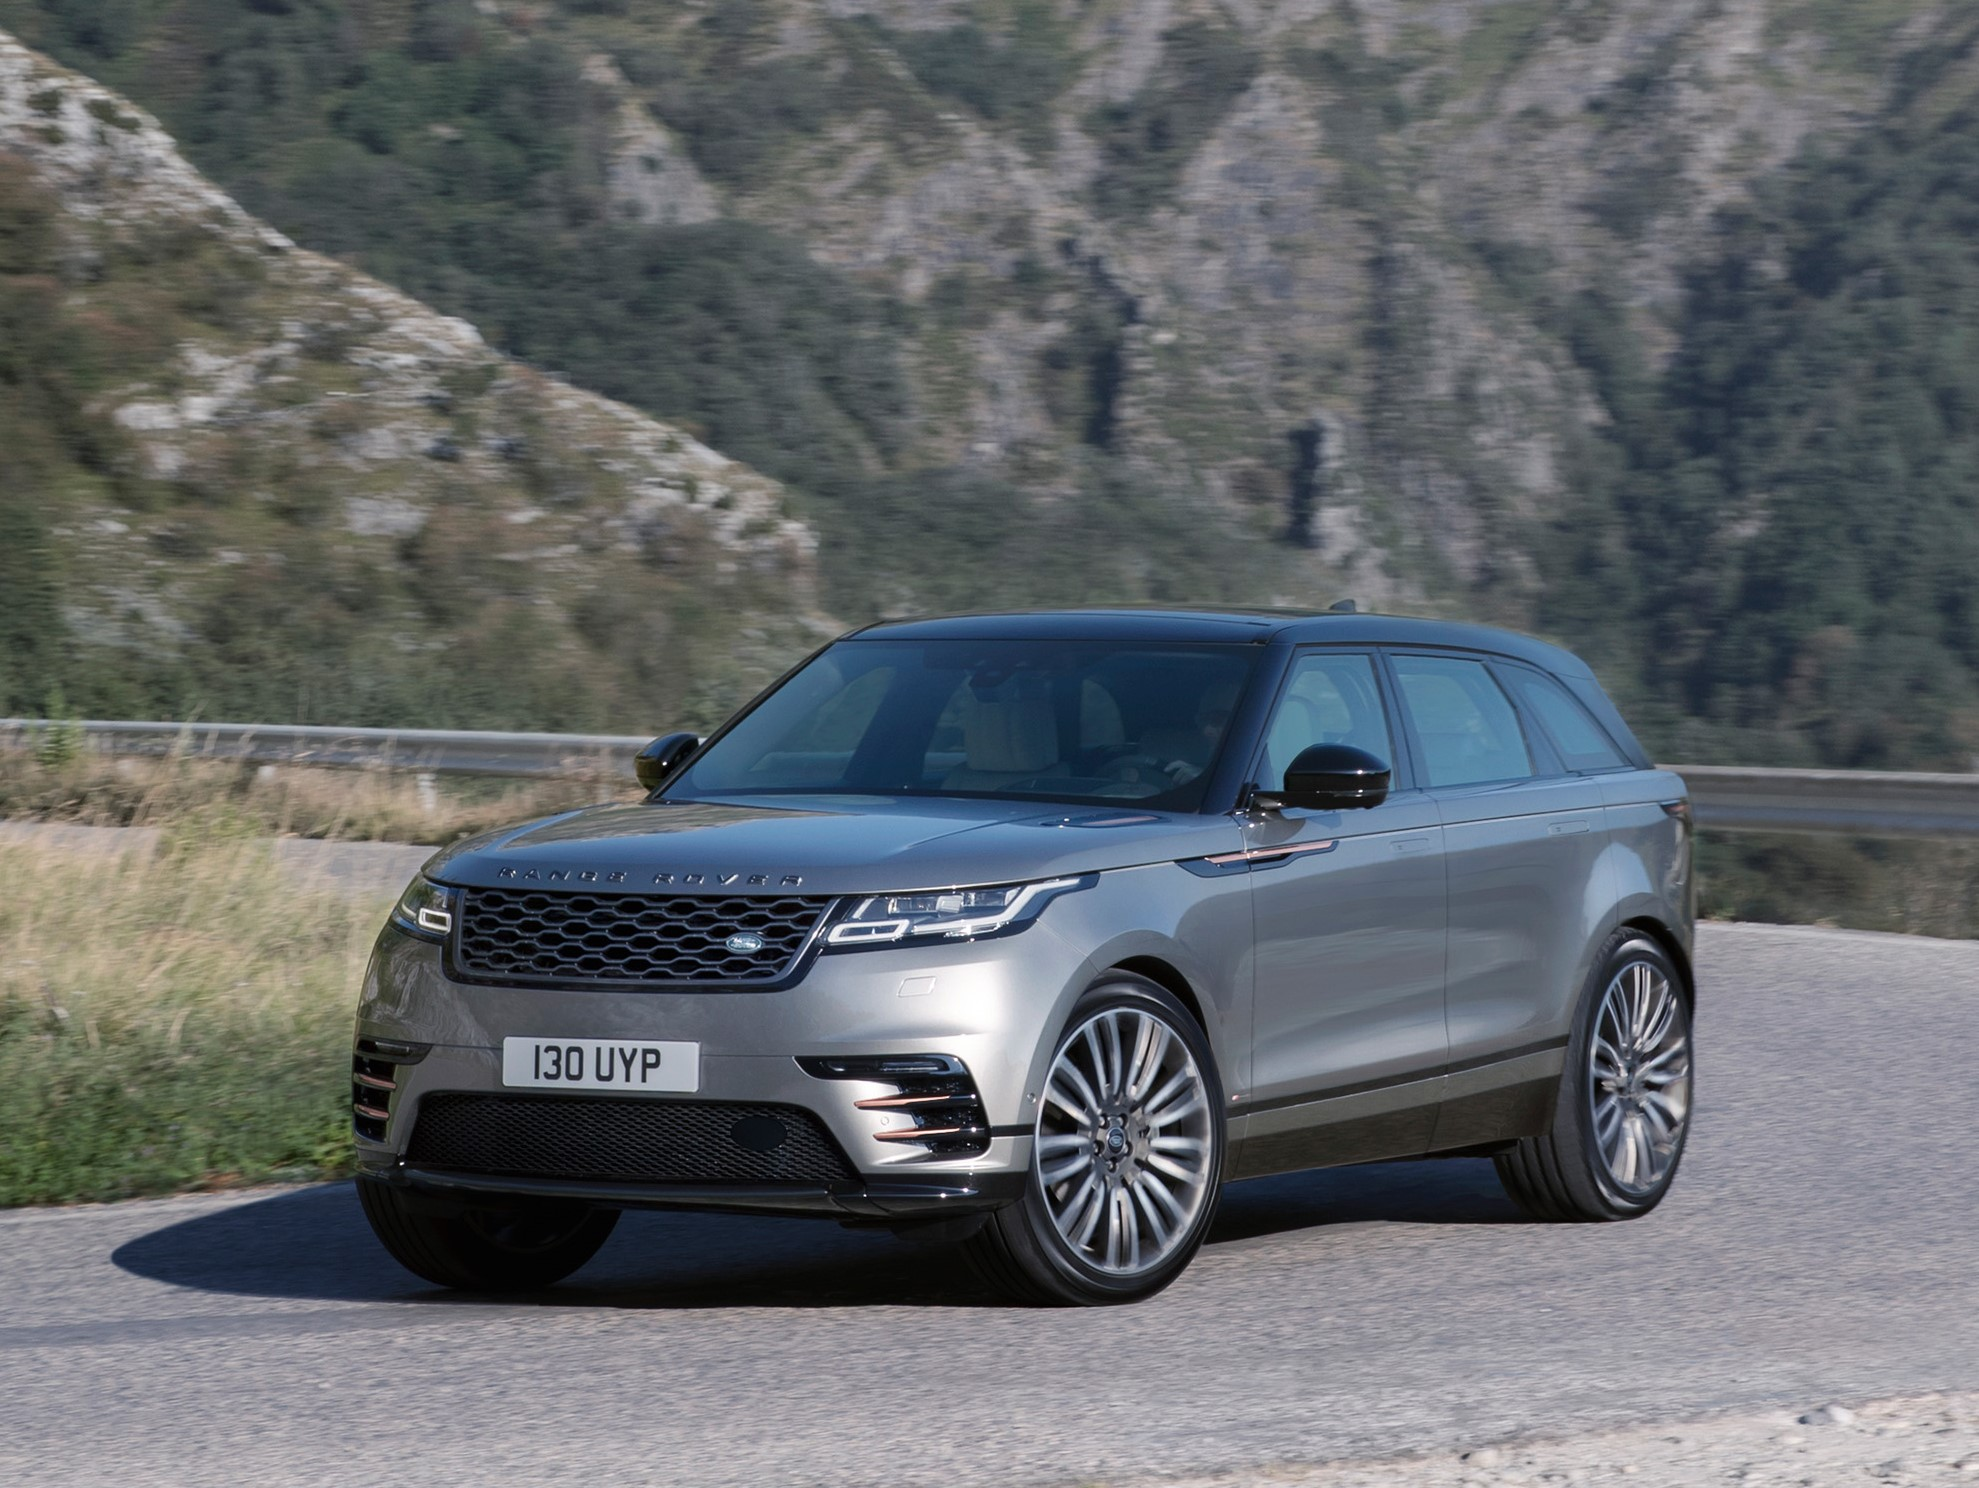 2018 Range Rover Velar review Macan X4 GLC and F Pace watch out